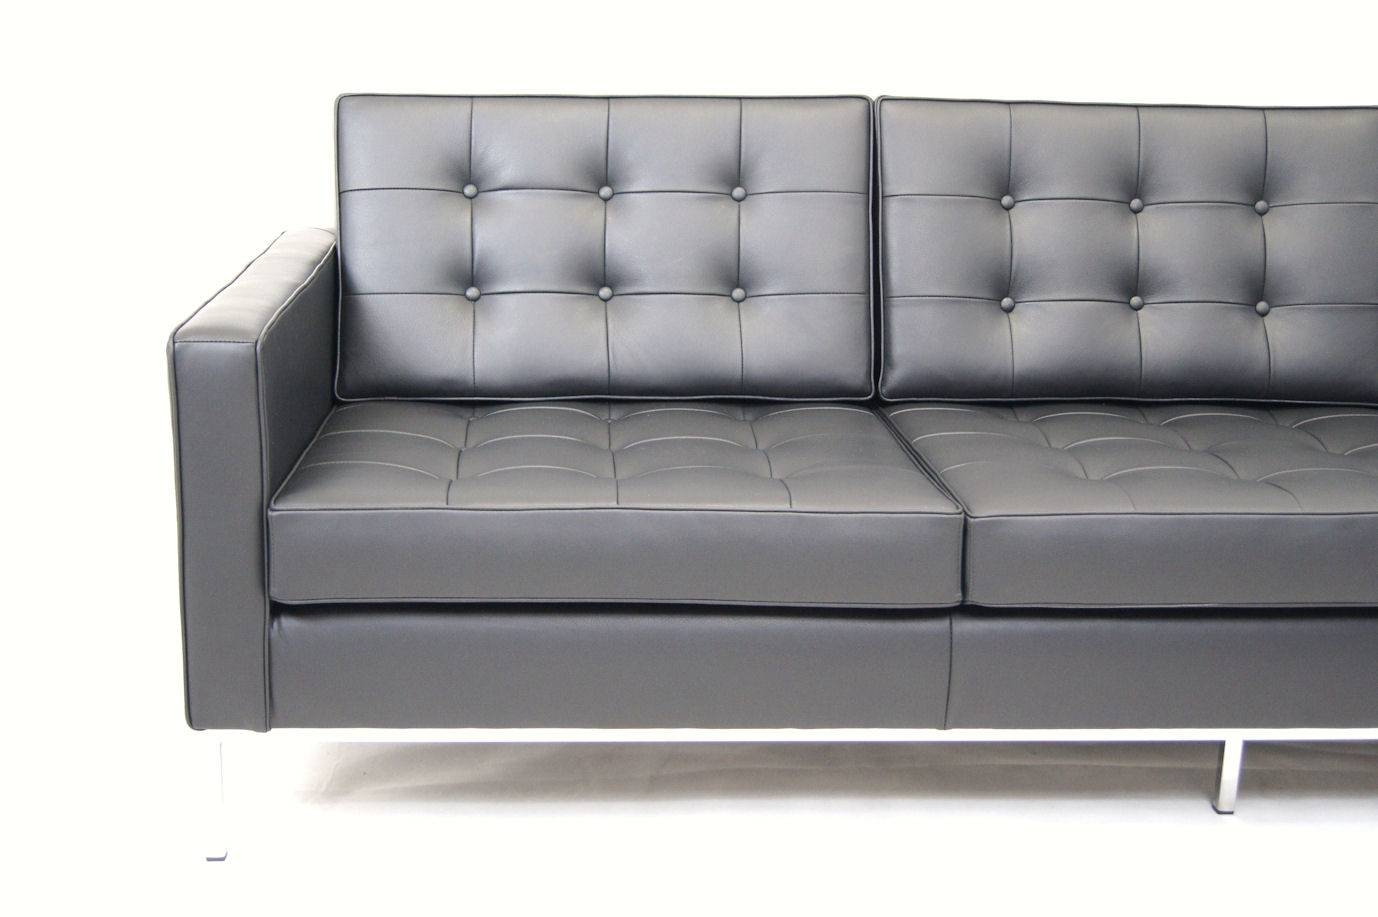 30 ideas of florence sofas - Florence knoll sofa gebraucht ...